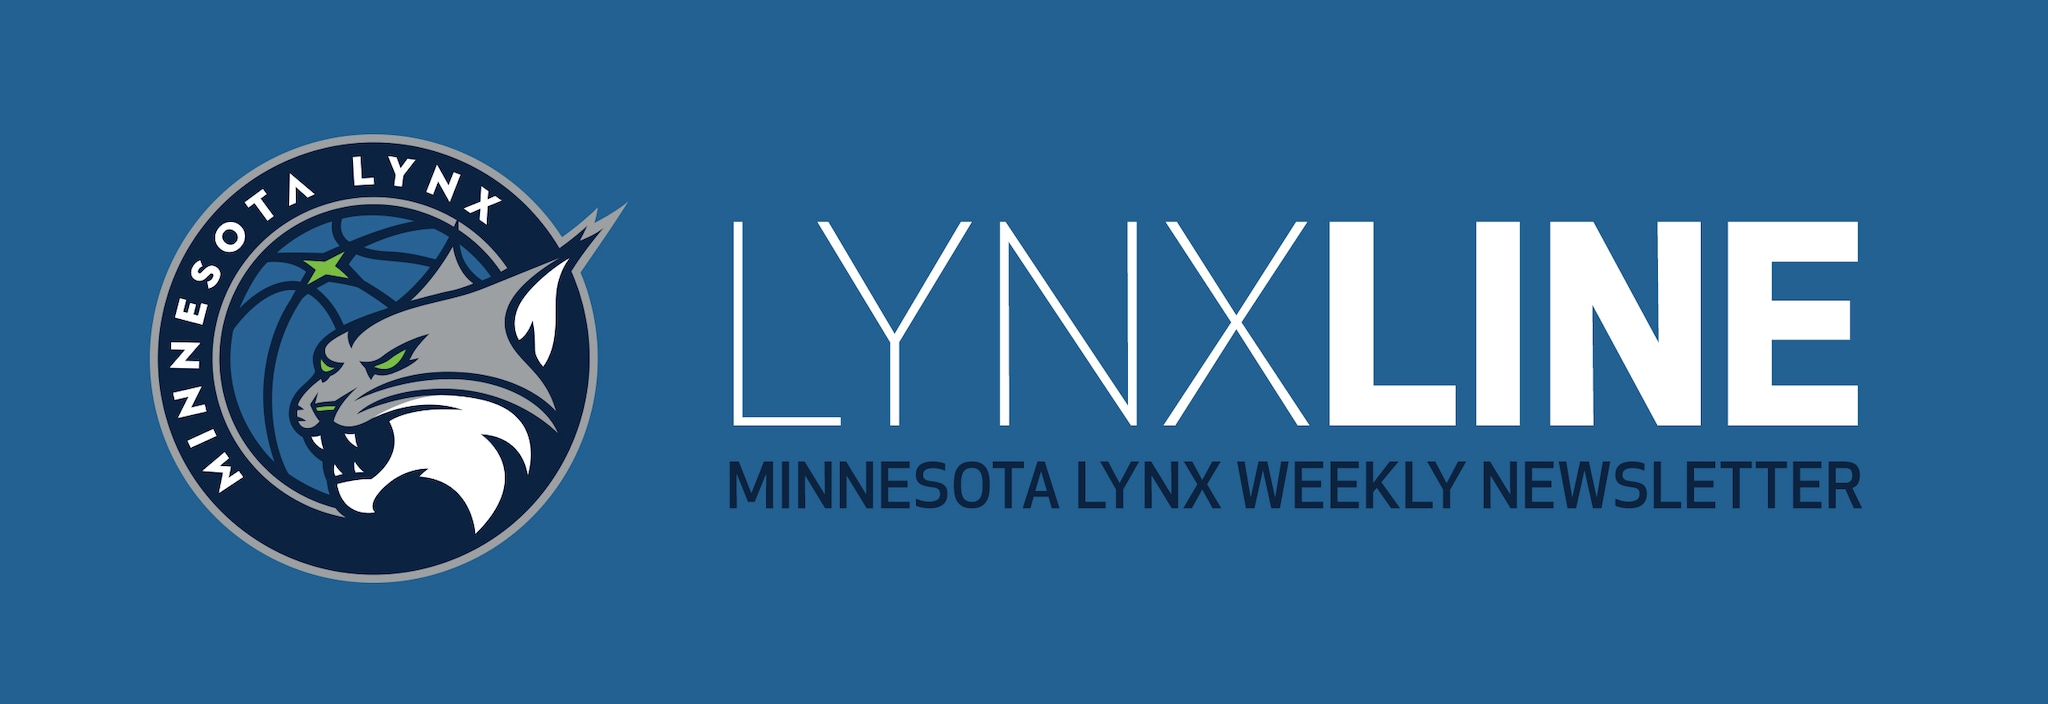 Sign Up For LynxLine